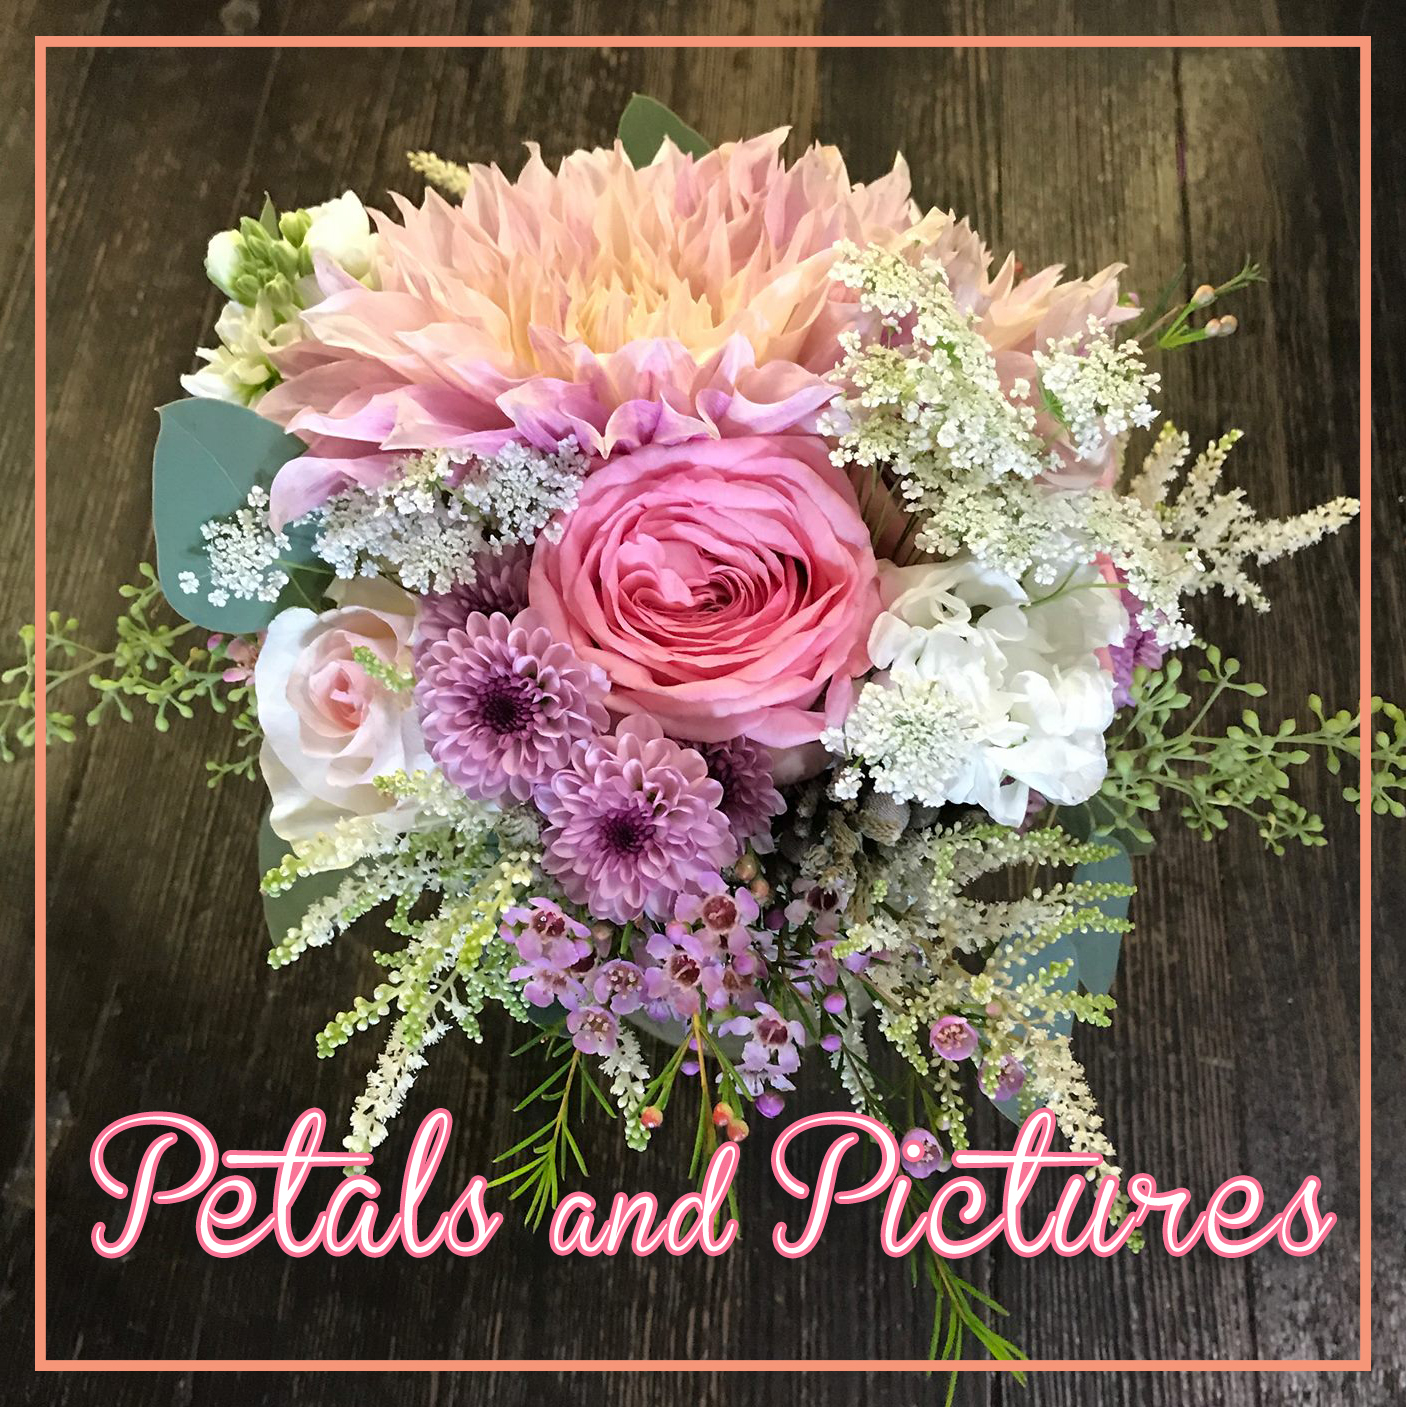 Petals and Pictures